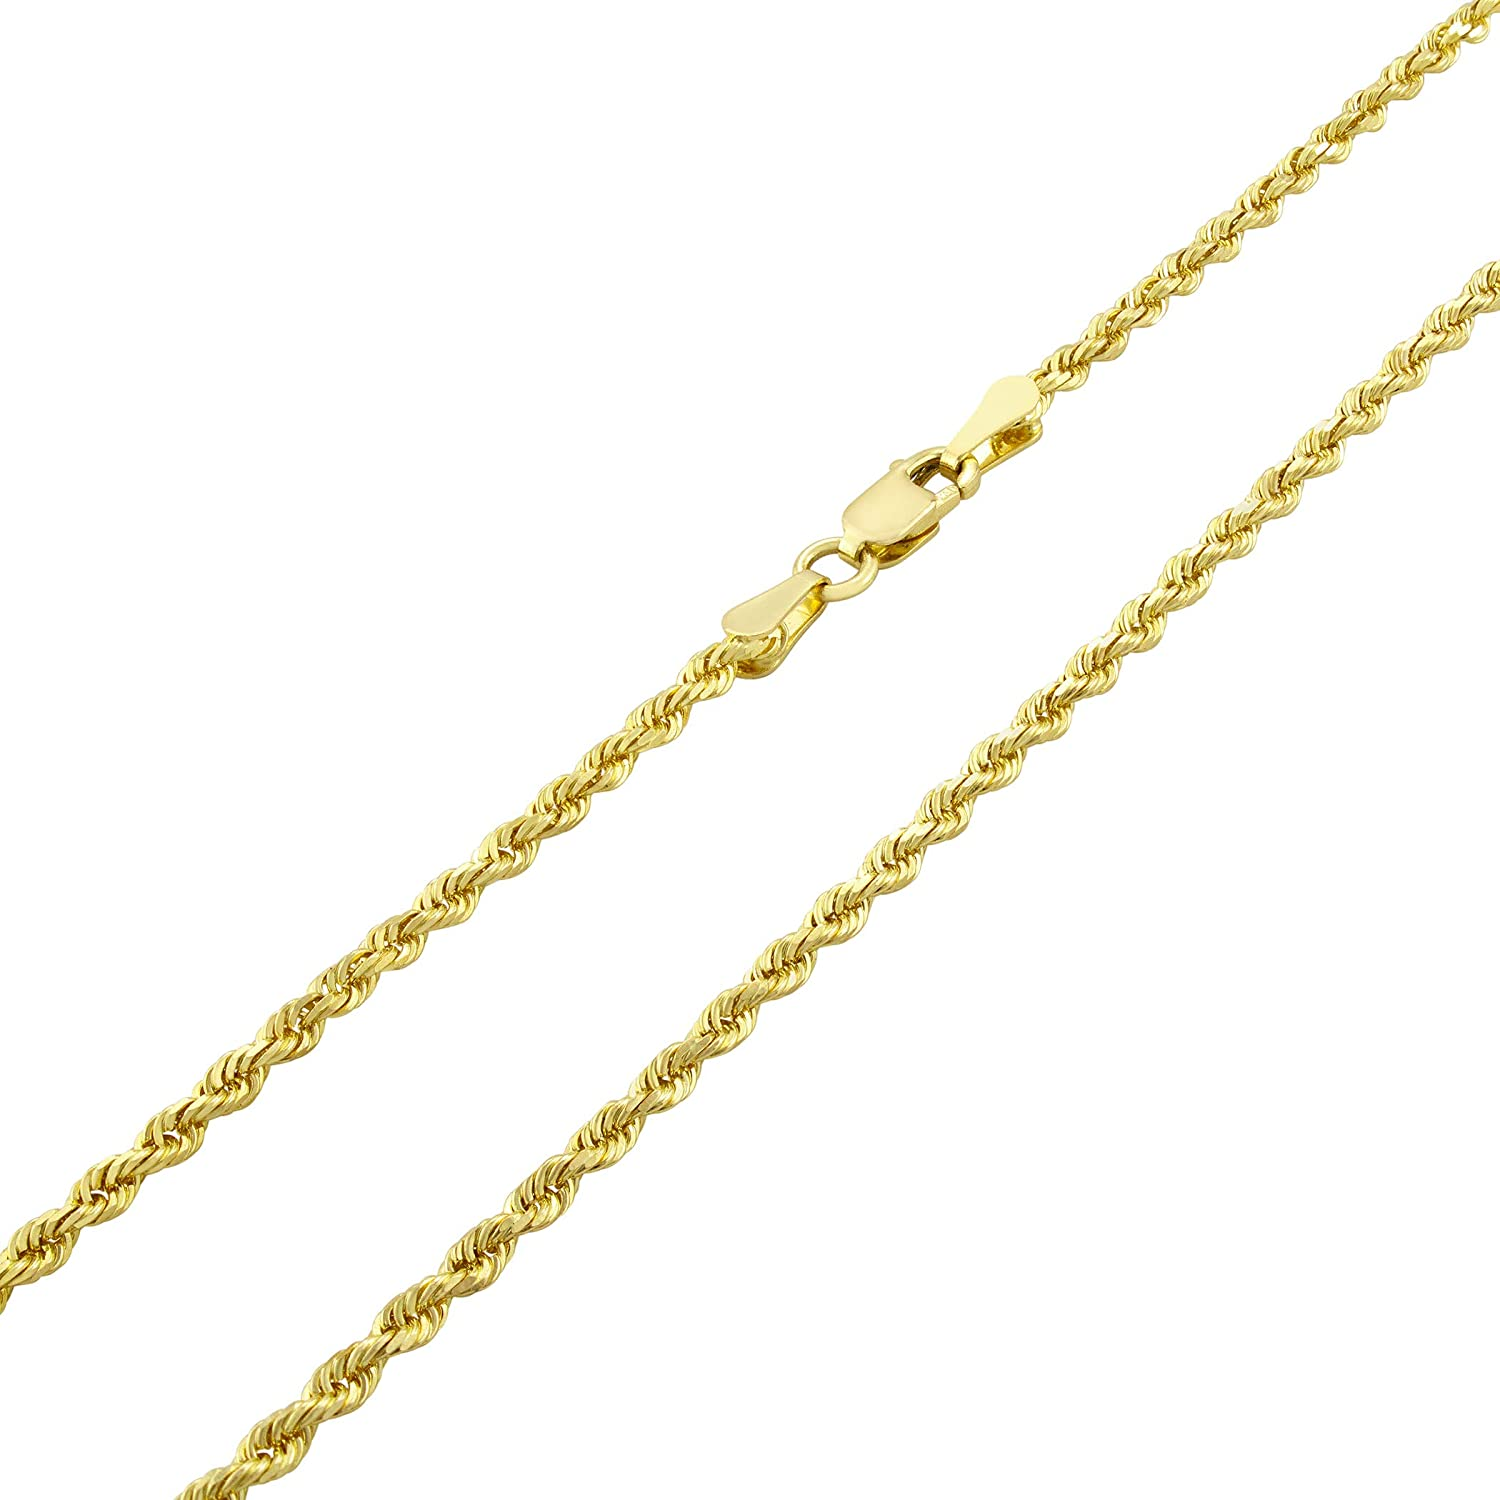 Nuragold 14k Yellow Gold 2mm Solid Rope Chain Diamond Cut Pendant Necklace, Mens Womens Lobster Lock 16